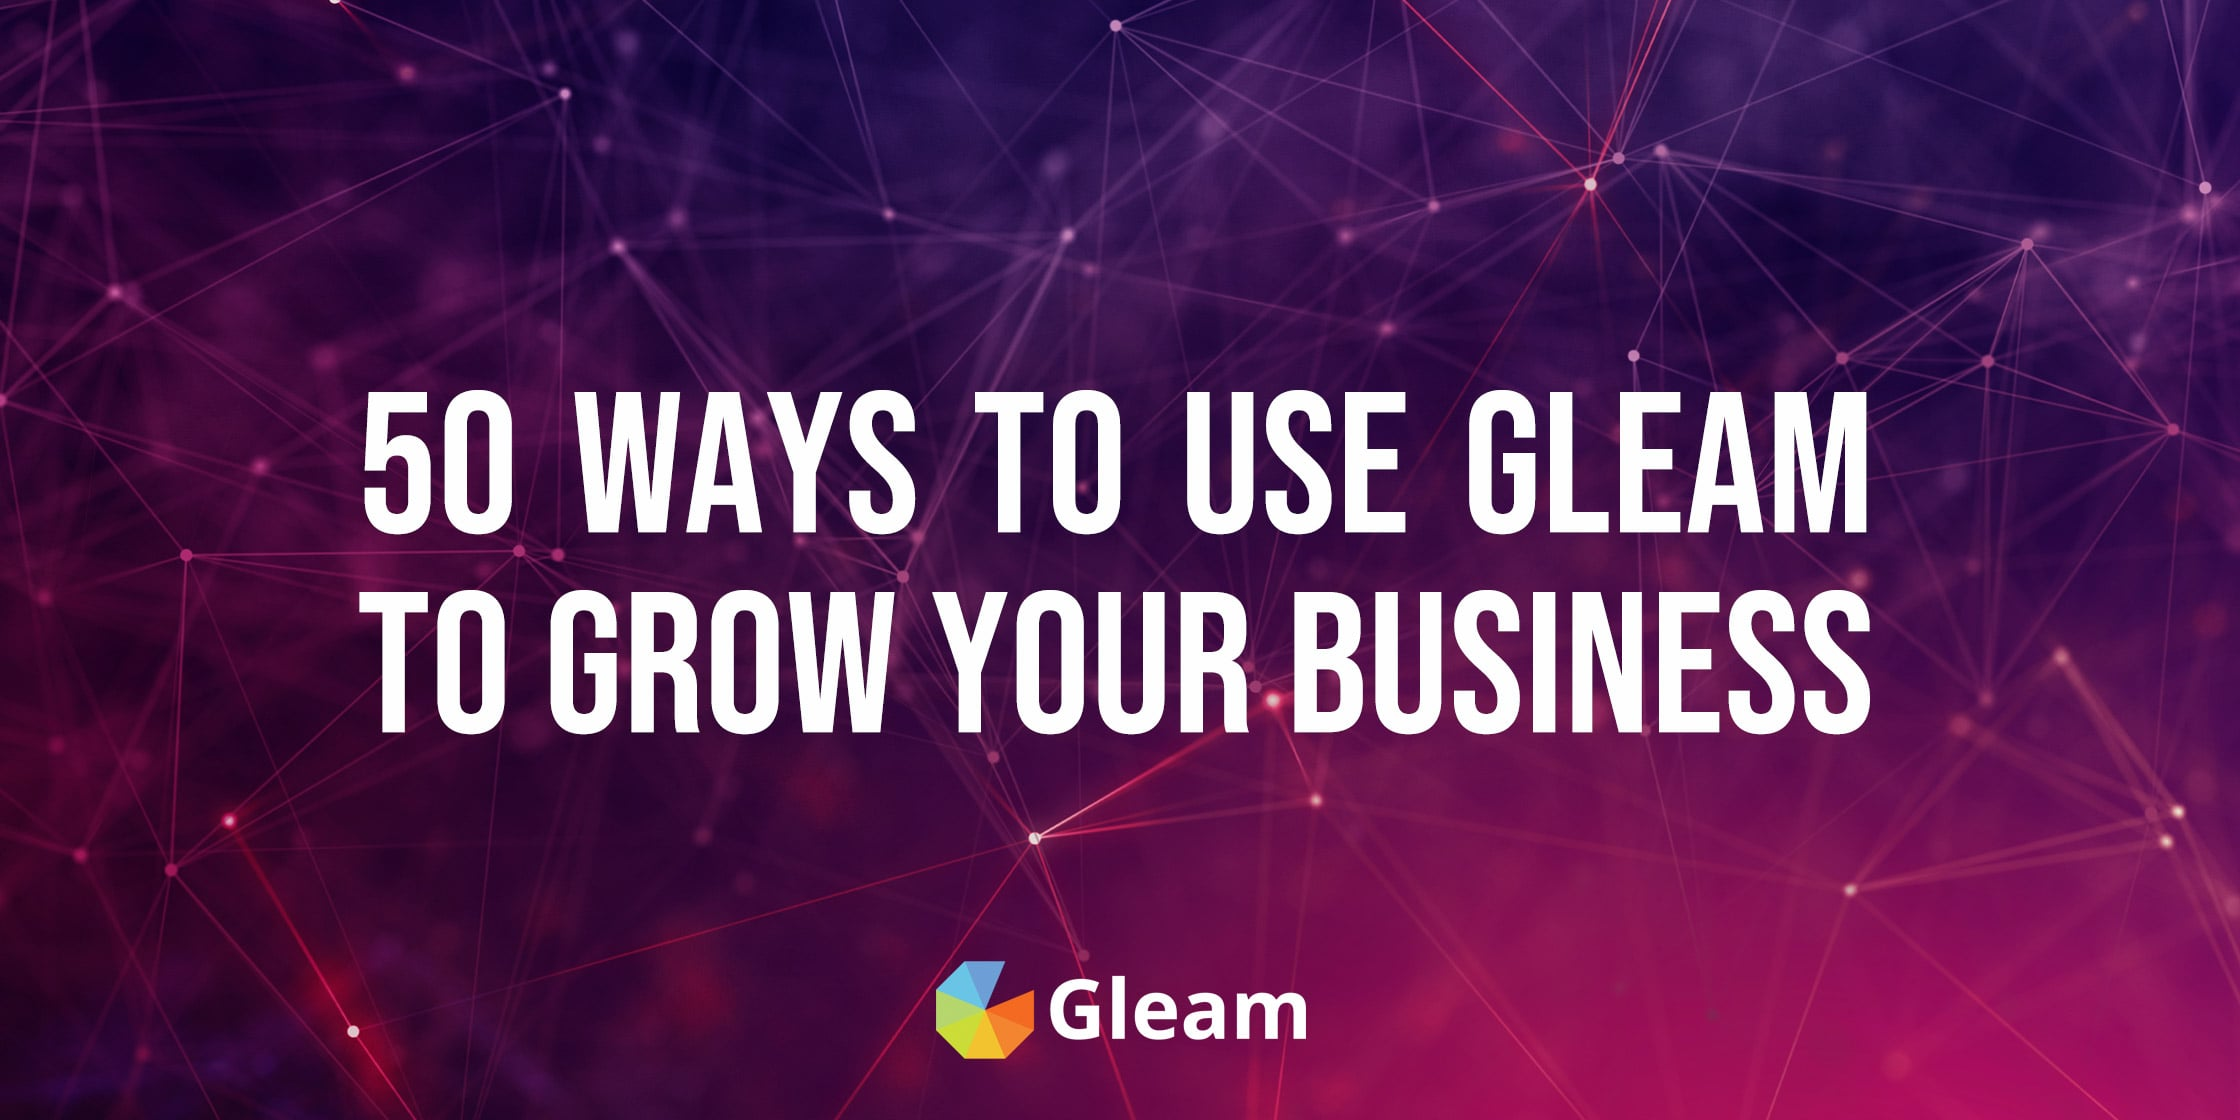 50 Ways to Use Gleam